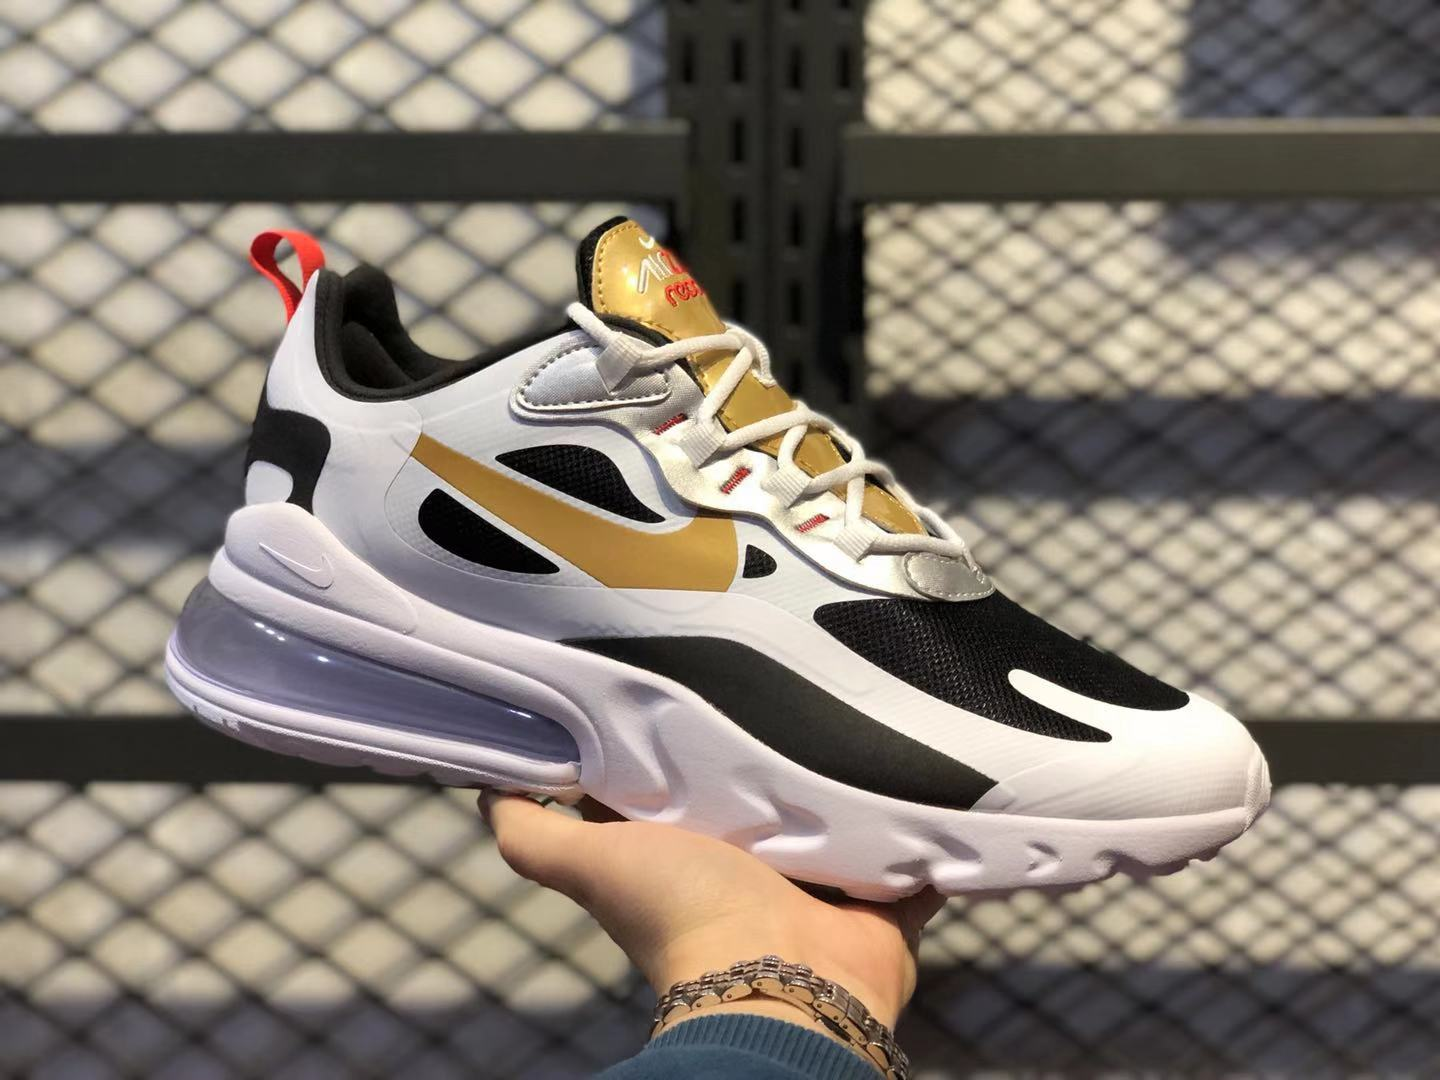 Nike Air‎ Max‎ 270 React White/Black-Gold Sneakers For Online Sale CT3433-001